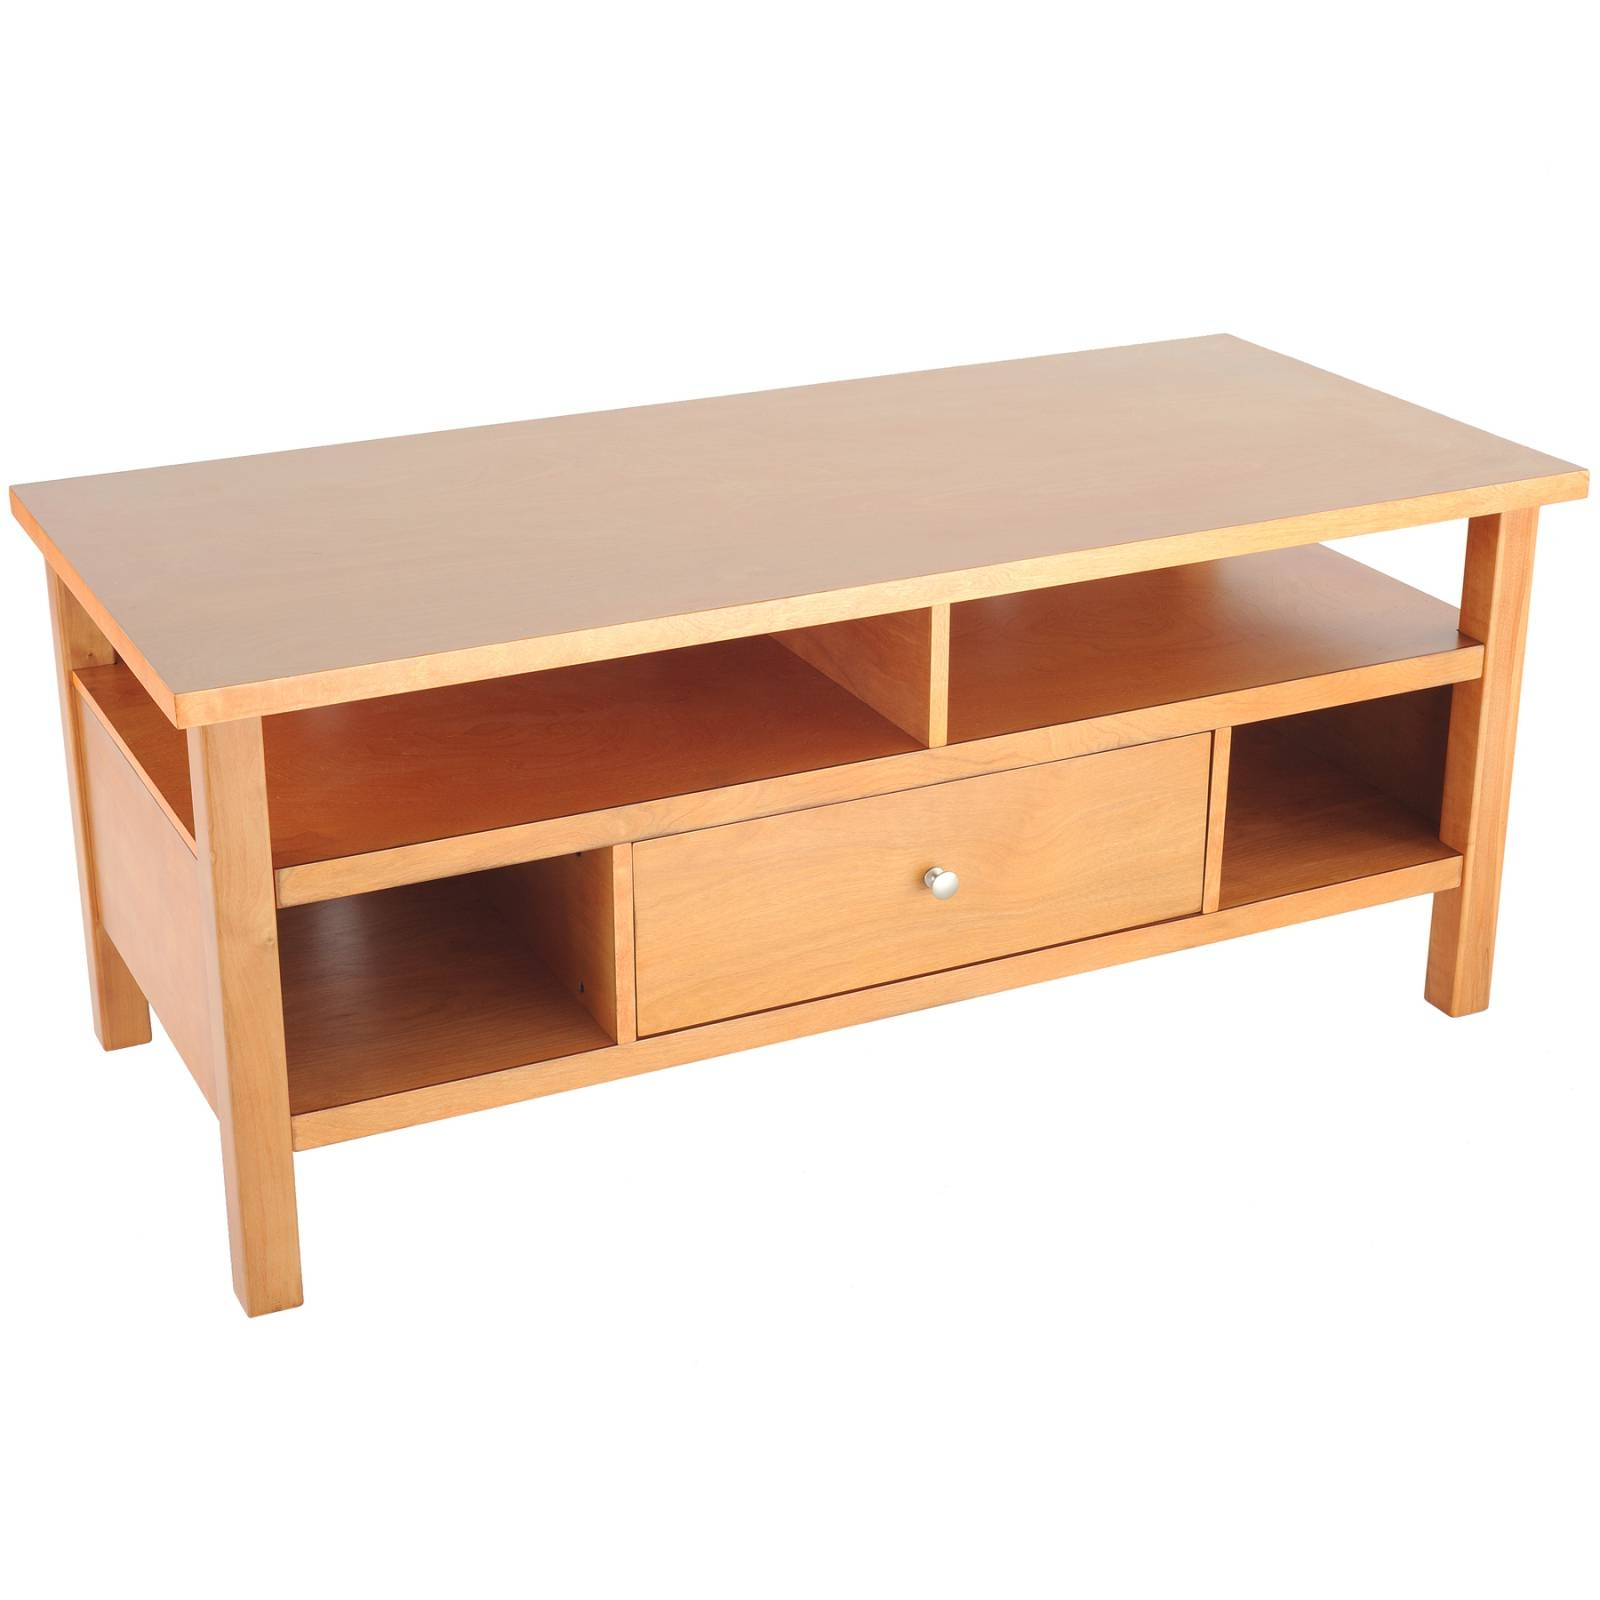 Maple Wood Tv Cabinet 15 Best Collection Of Maple Tv Stands For Flat For Widely Used Maple Wood Tv Stands (View 11 of 20)